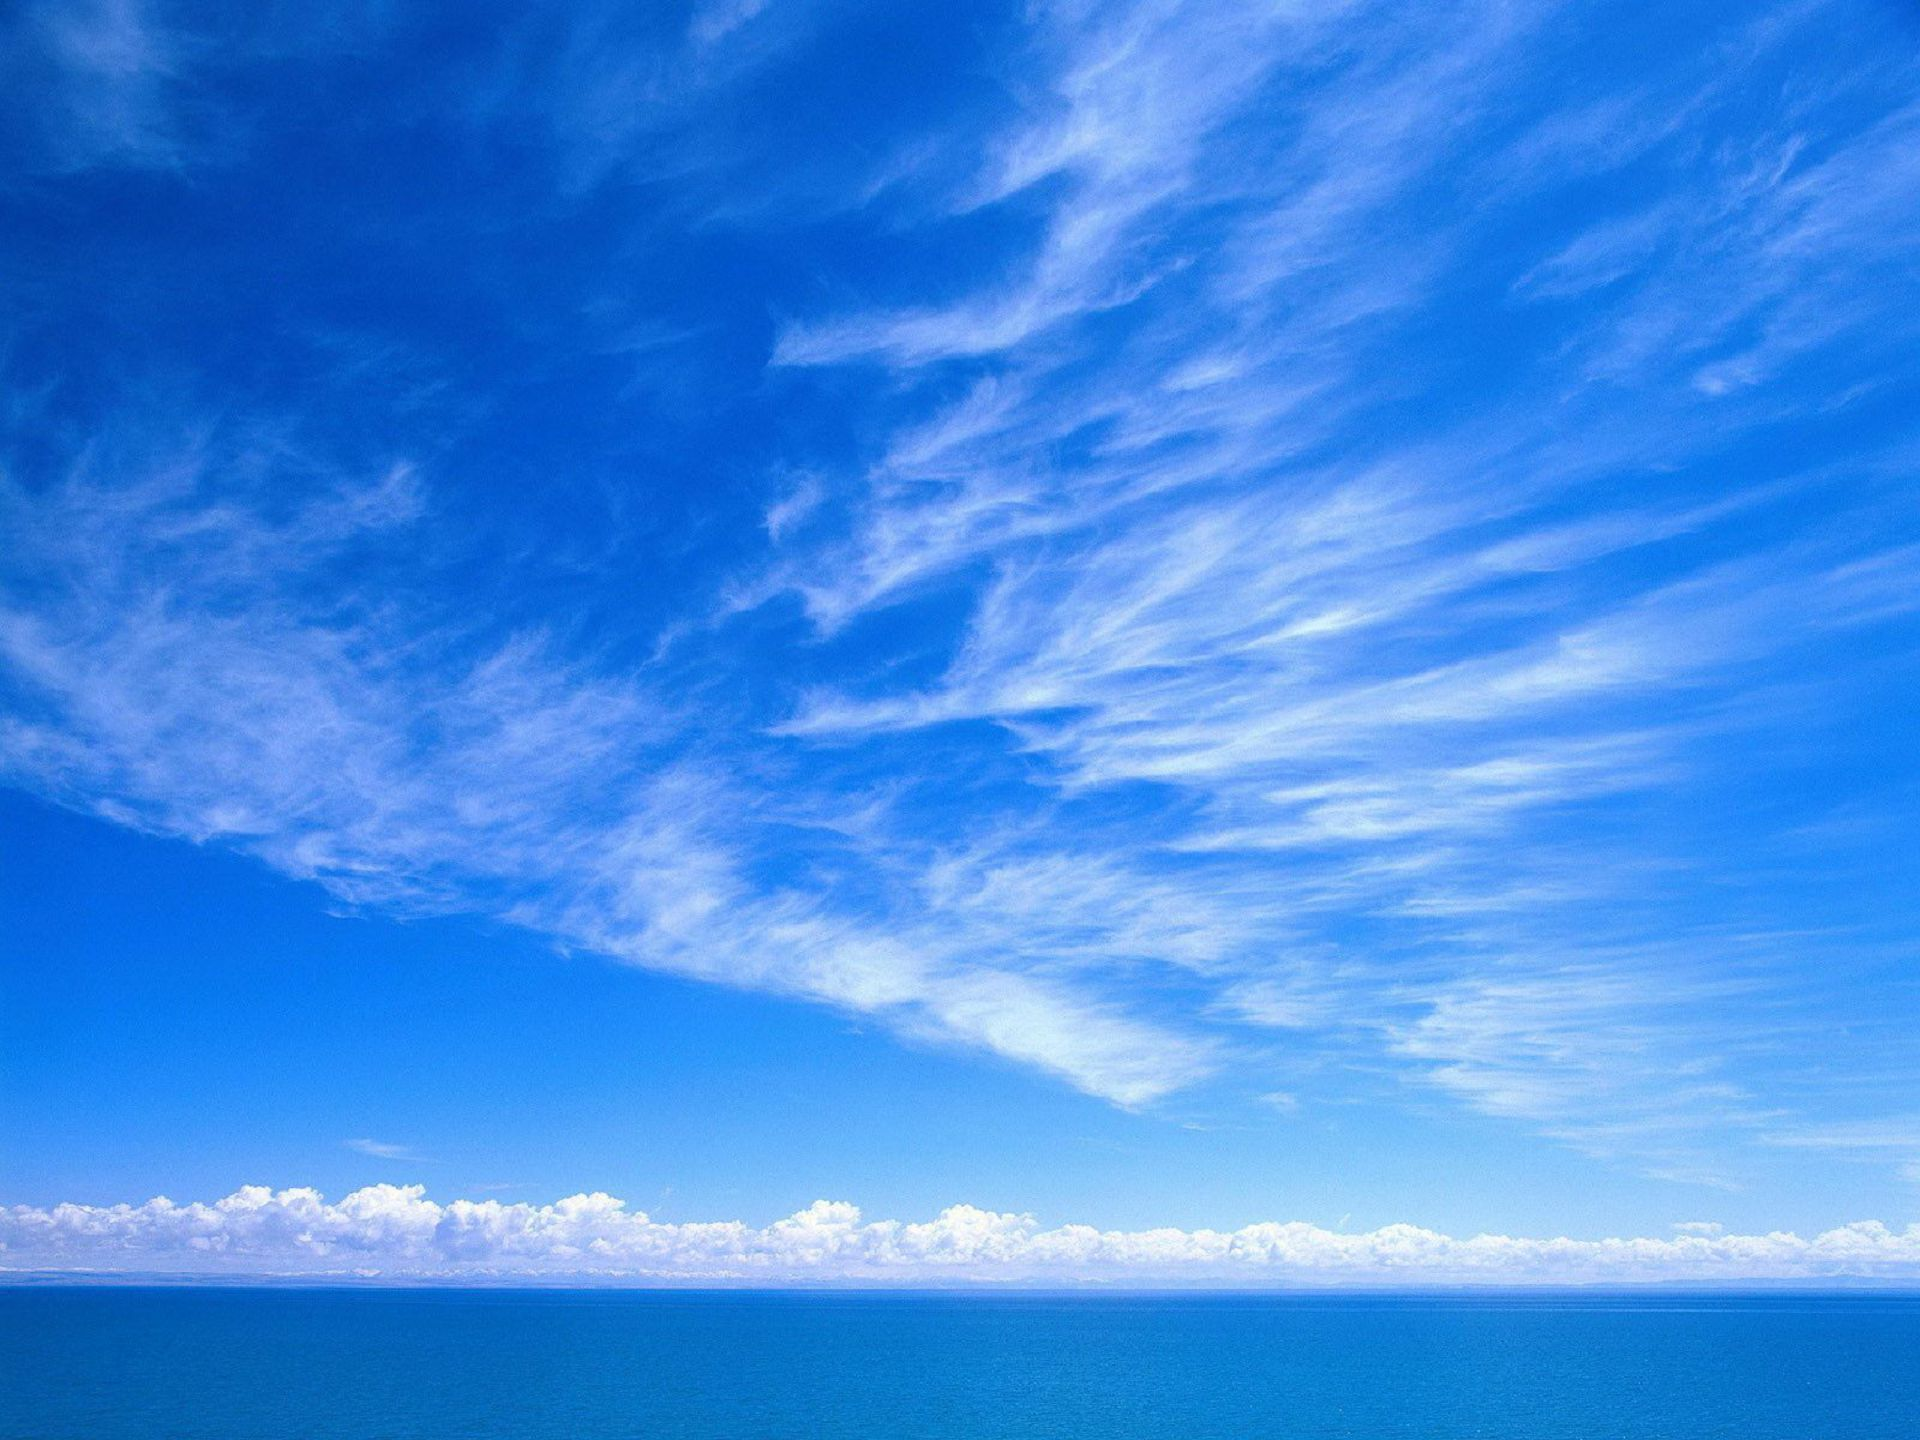 Blue Sky Computer Wallpaper